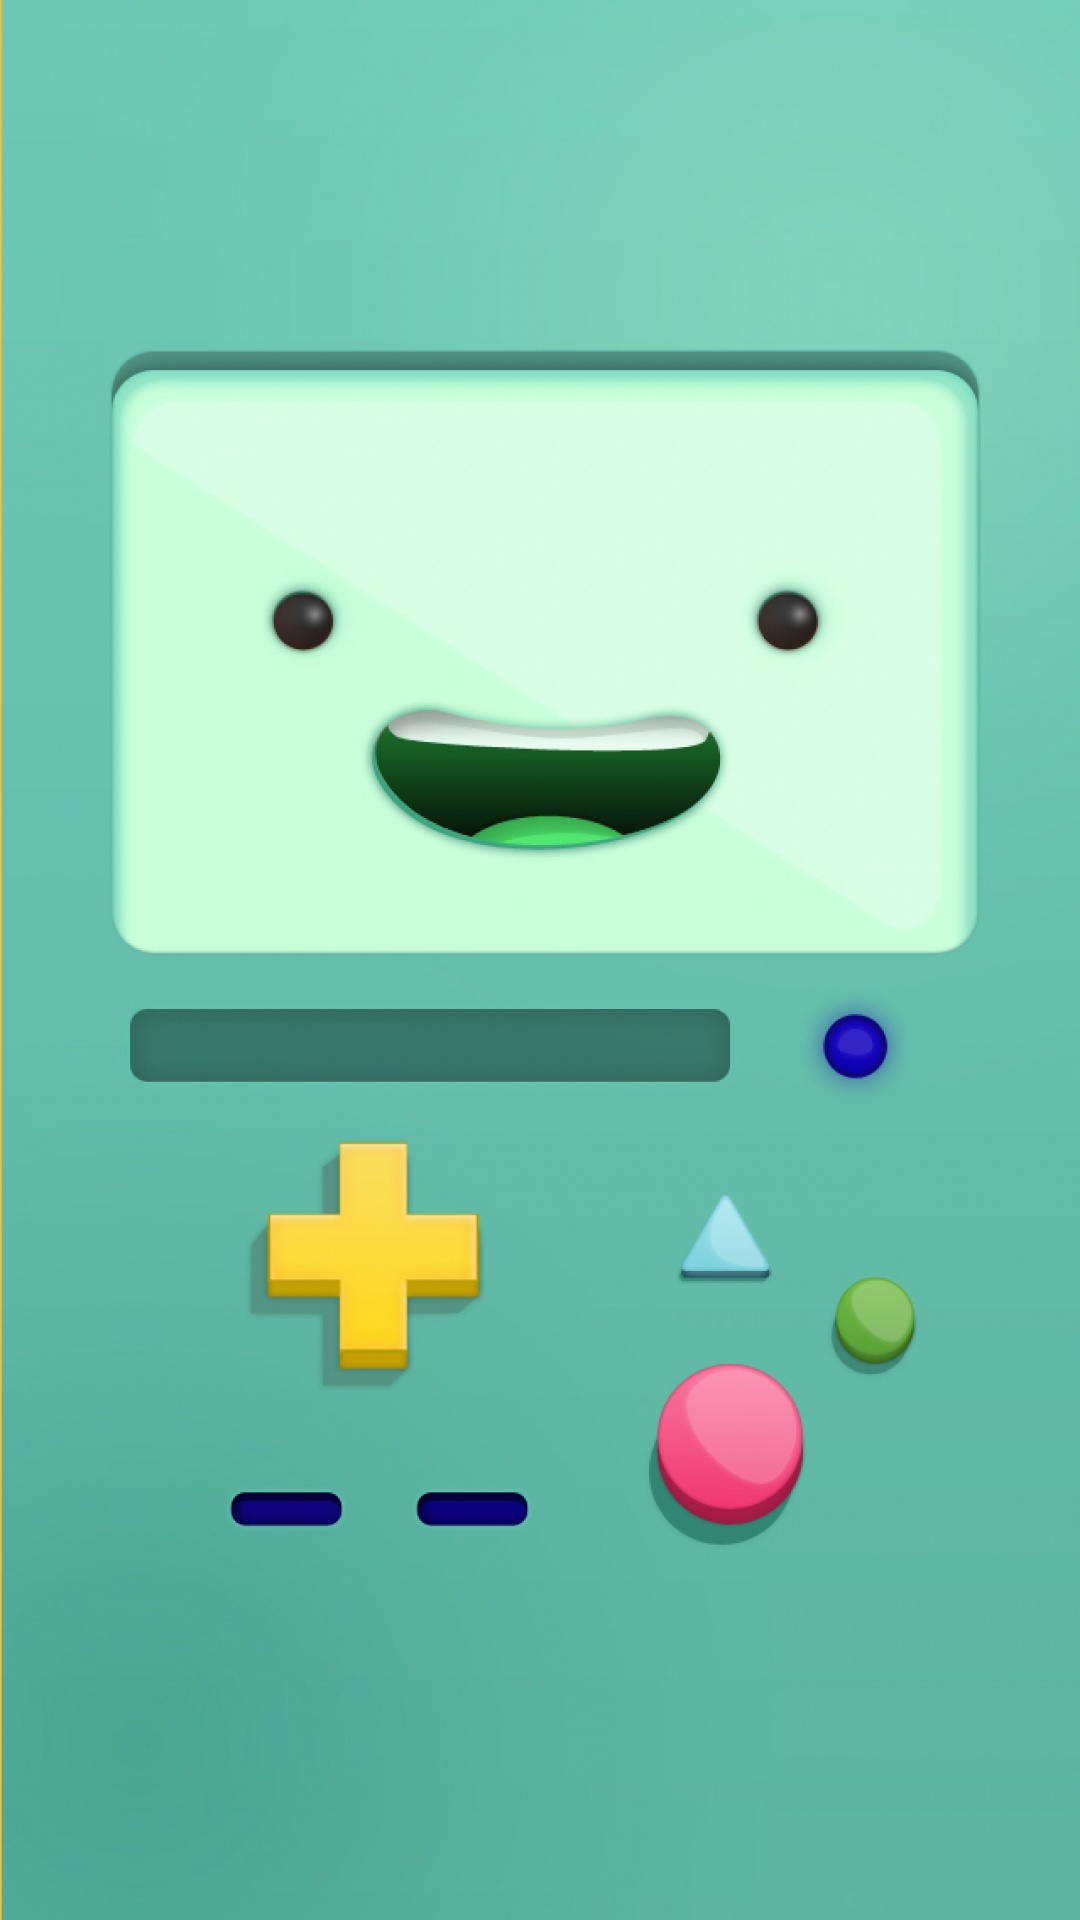 Adventure time wallpaper for computer and phone image mod db report rss adventure time wallpaper for computer and phone view original thecheapjerseys Images